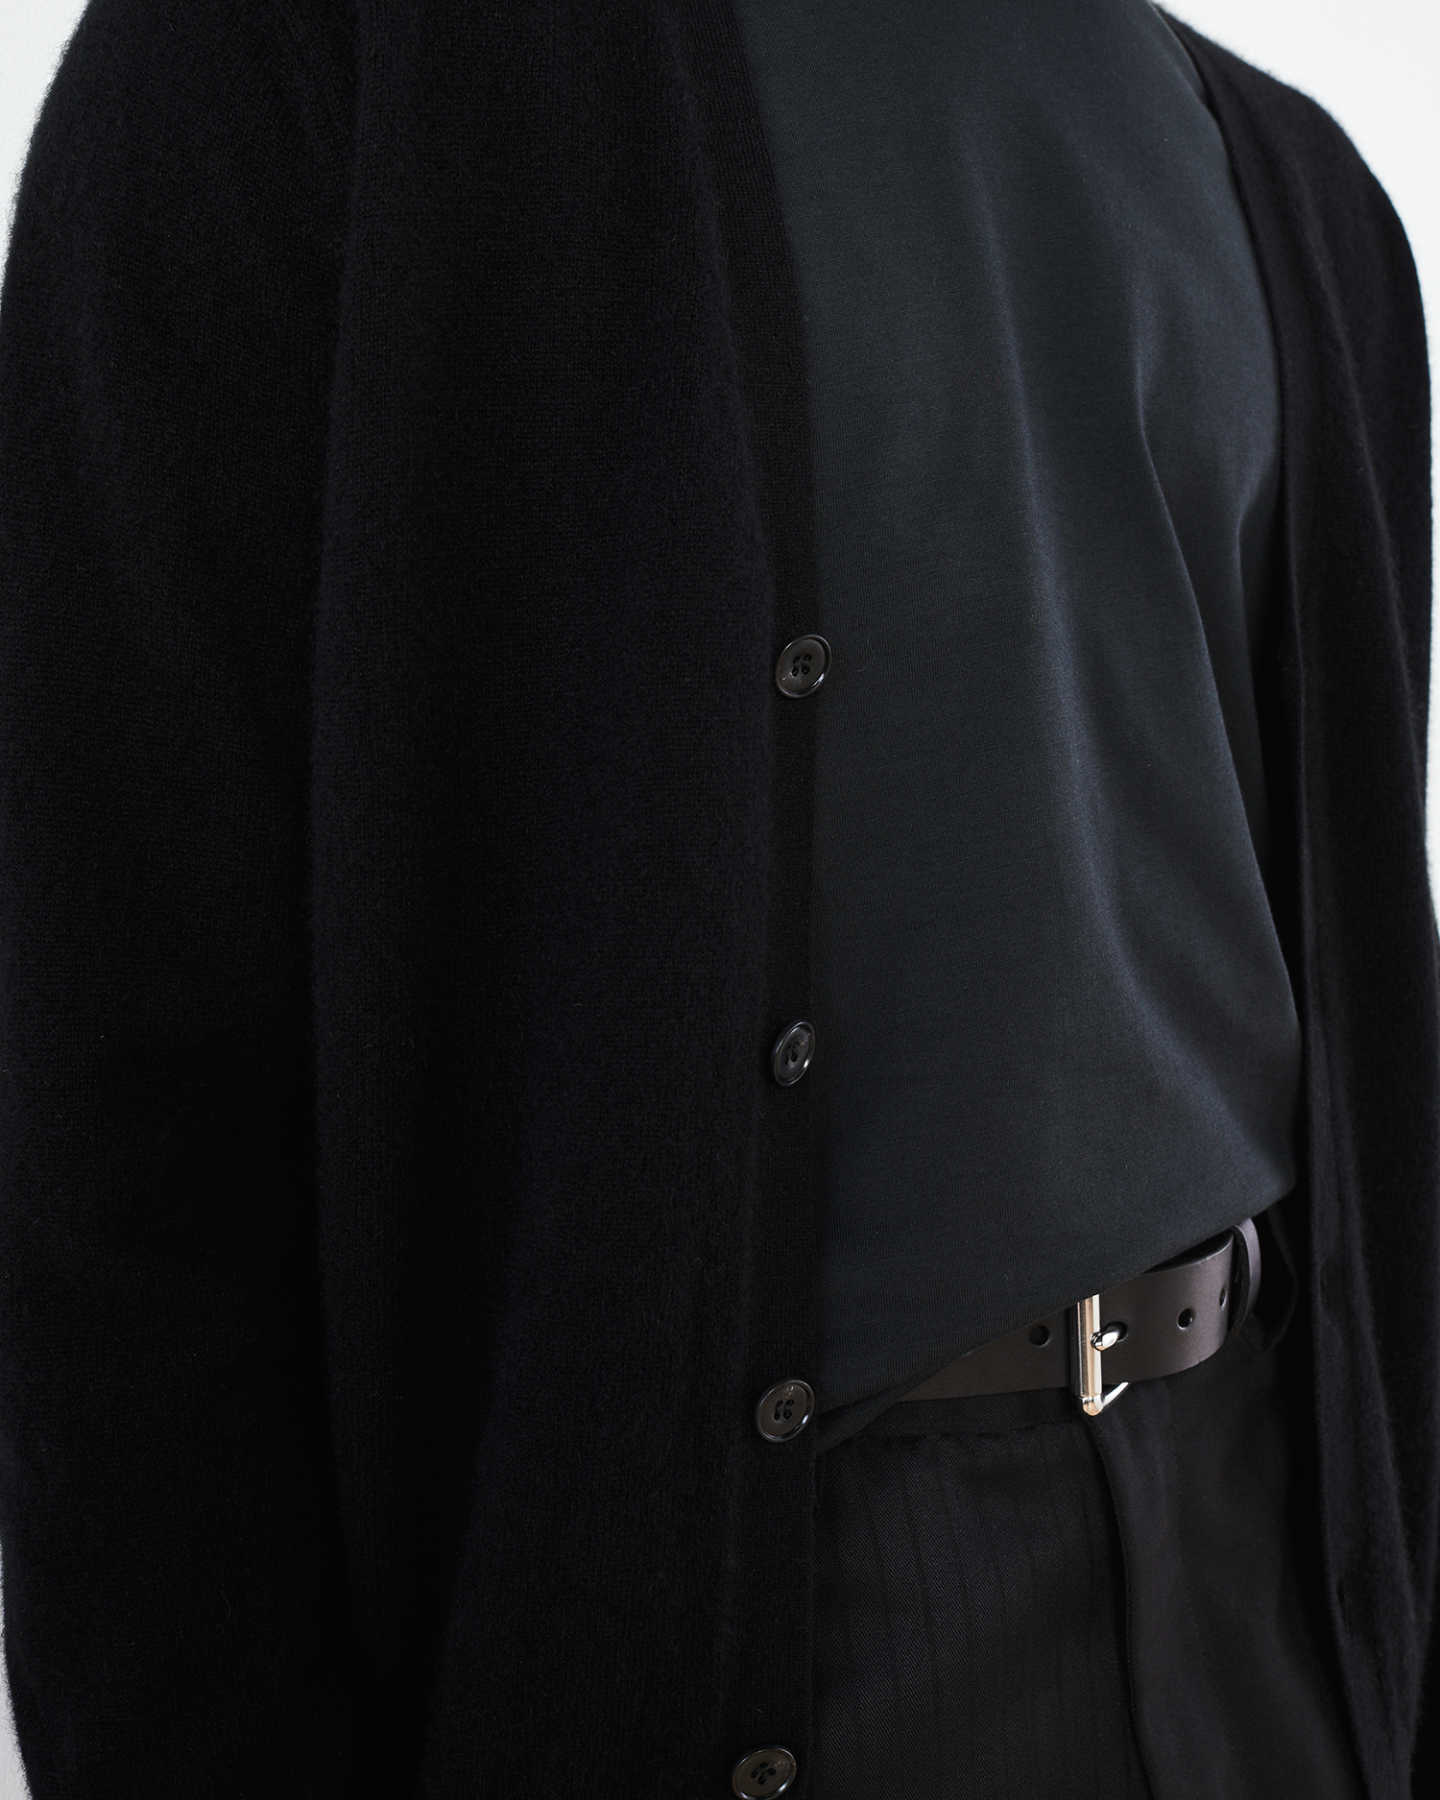 Men's cashmere cardigan sweater in black zoomed in